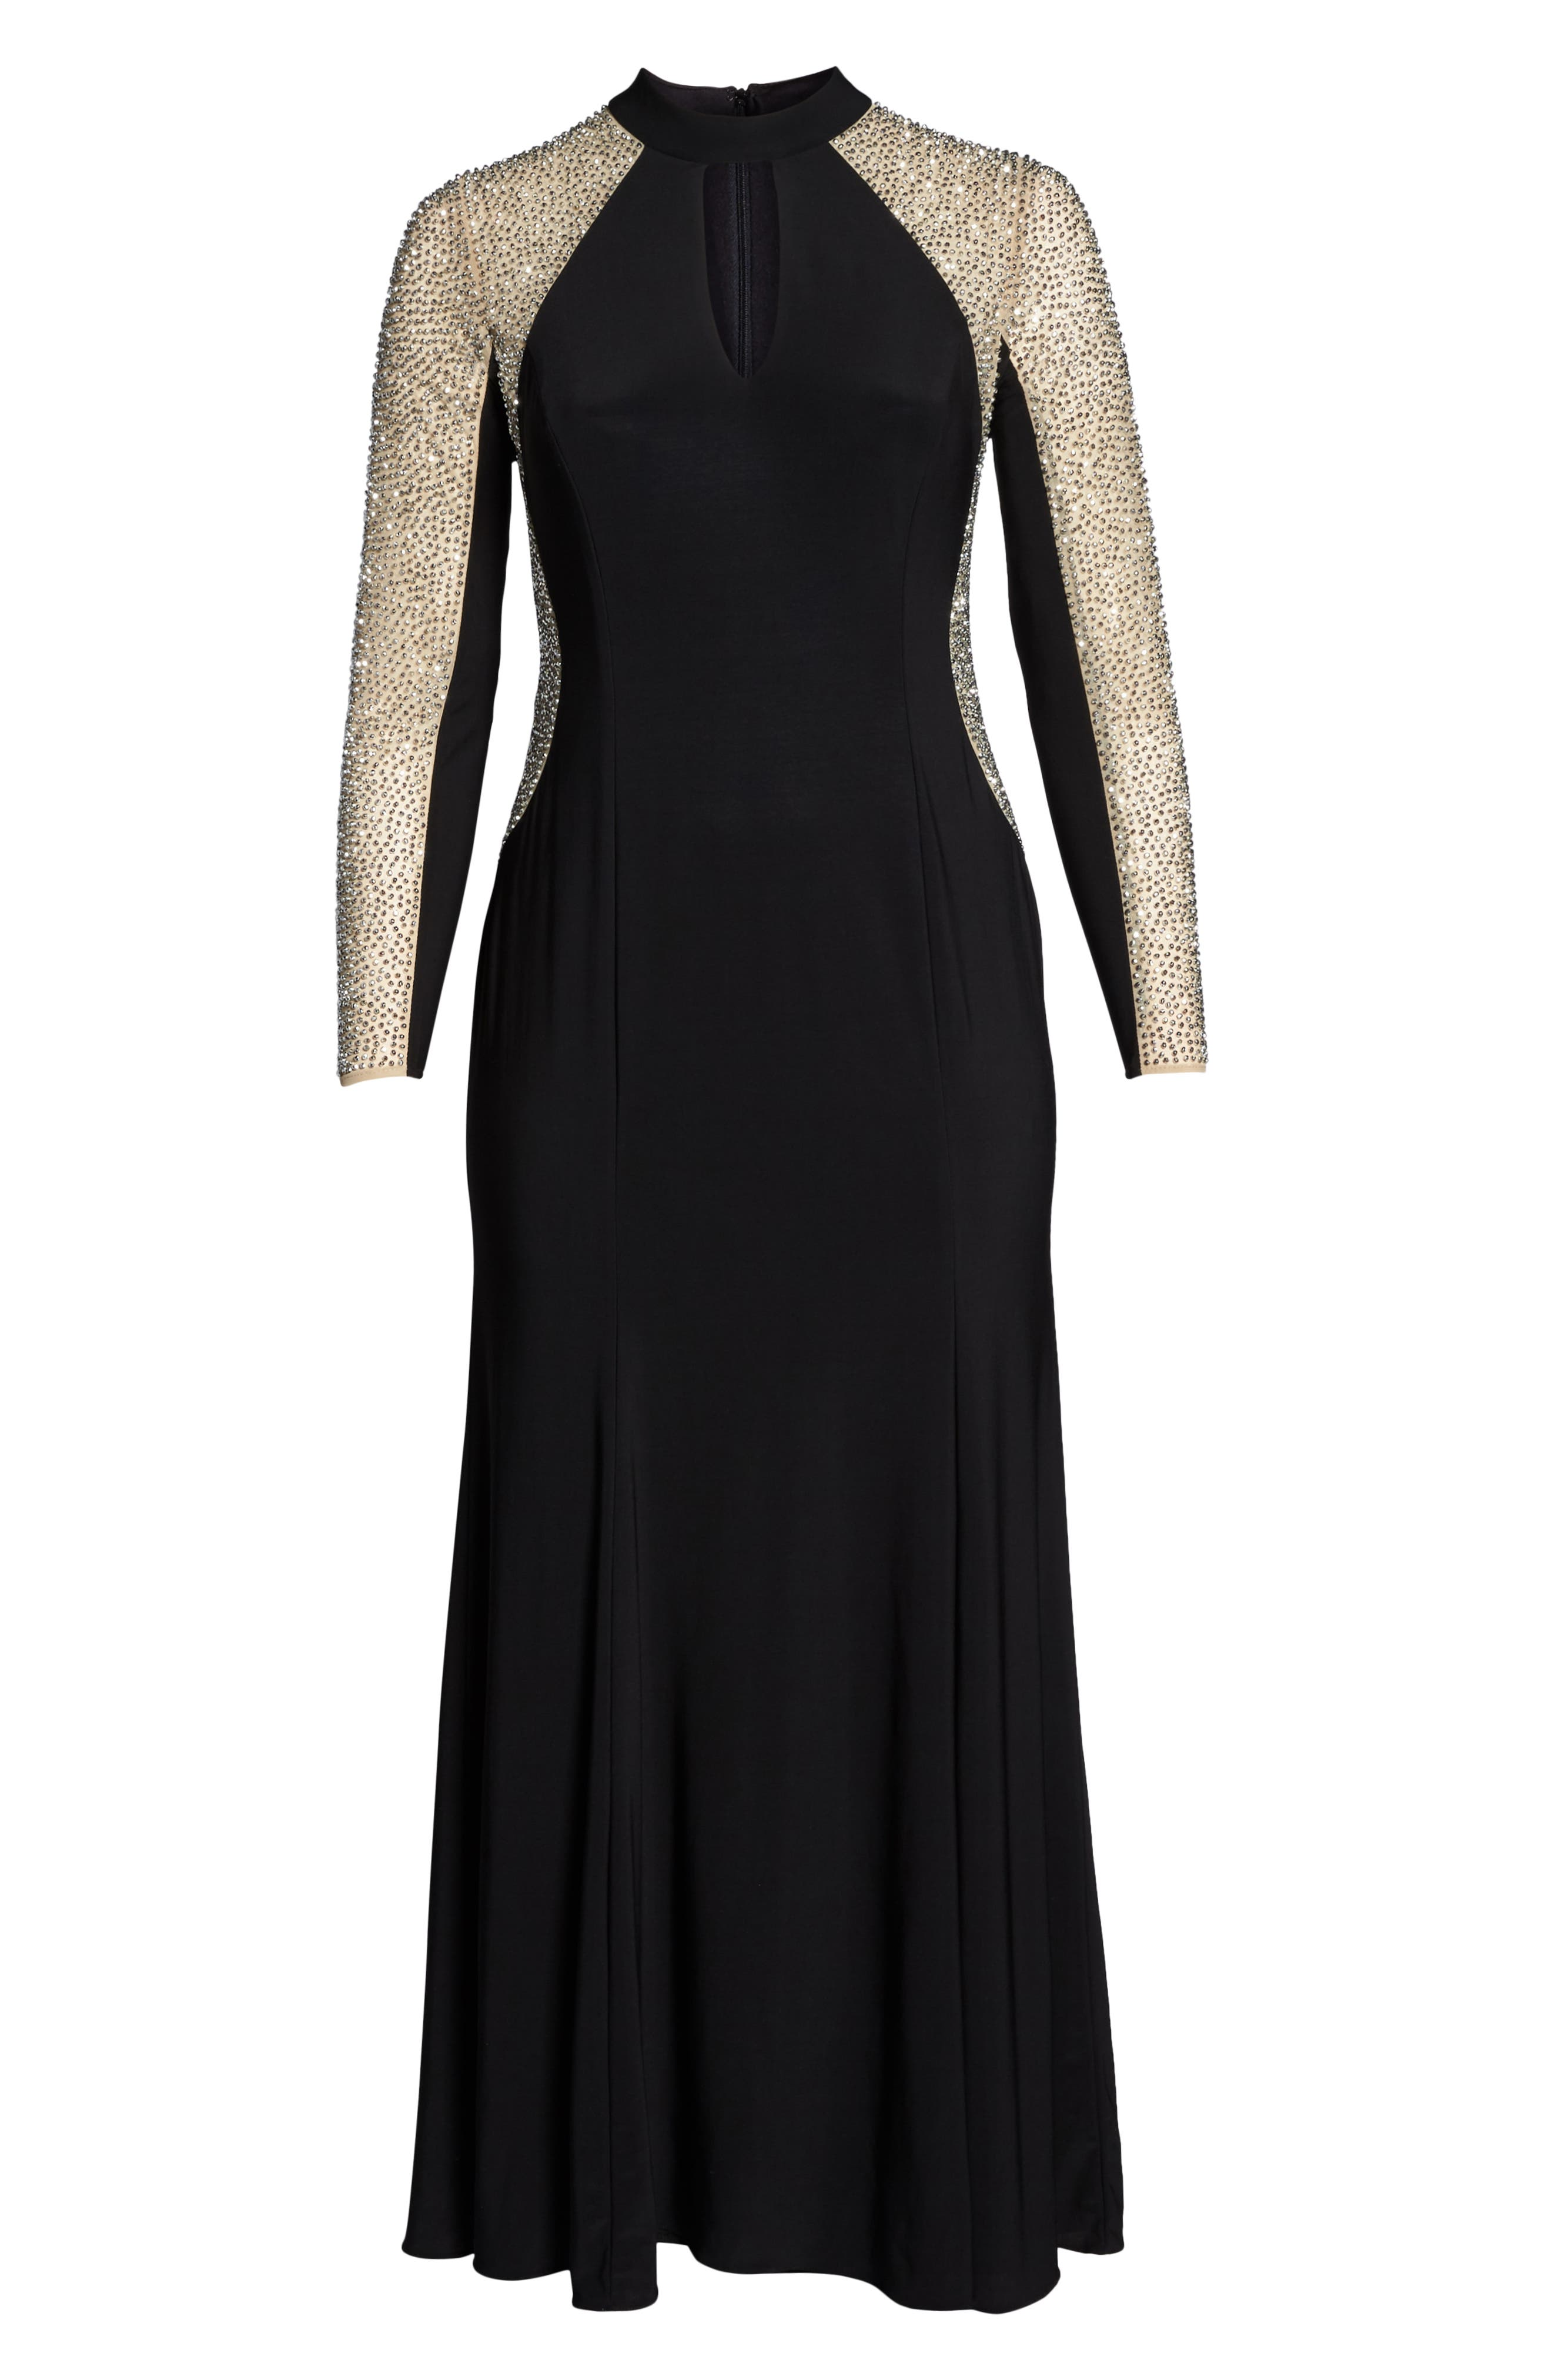 XSCAPE, Beaded A-Line Gown, Alternate thumbnail 7, color, BLACK/ NUDE/ SILVER